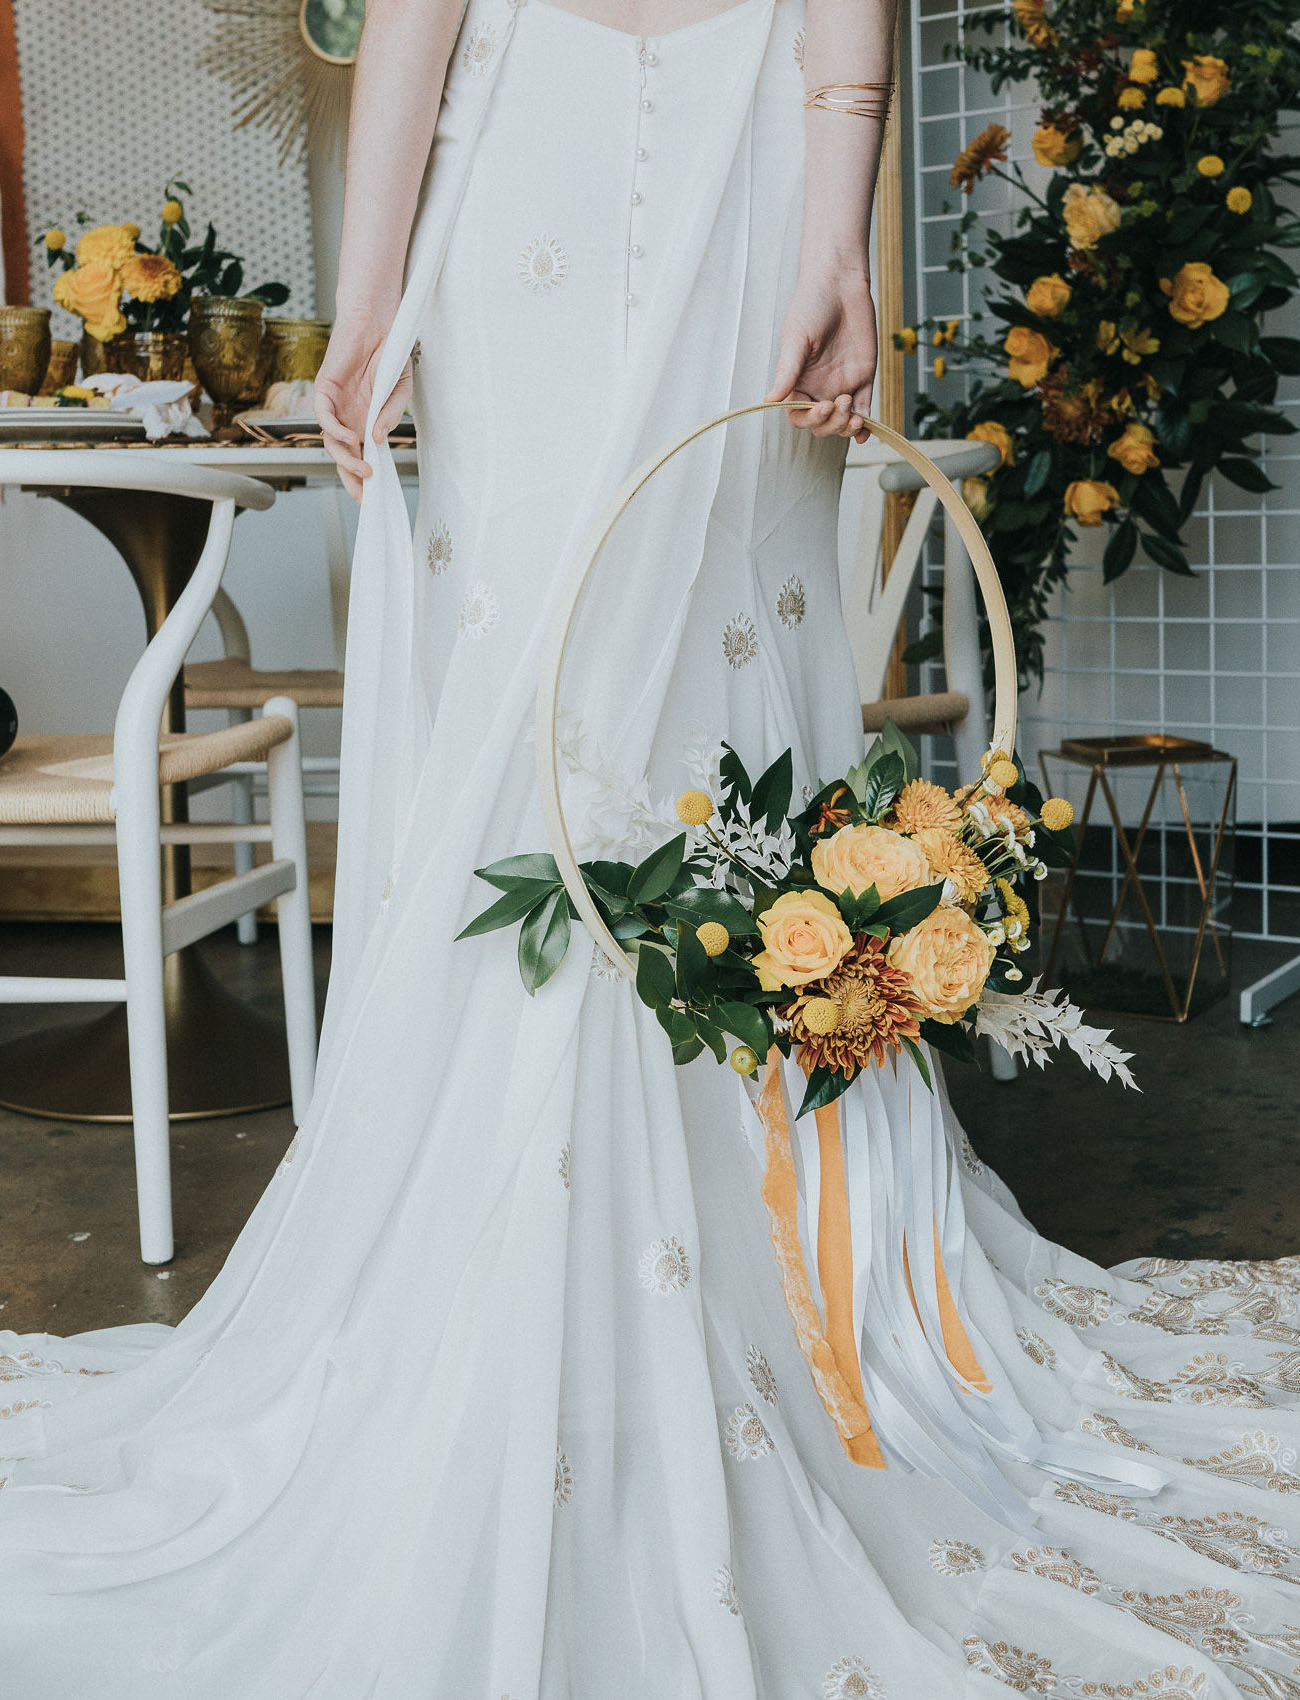 The wedding bouquet was made of a hoop and mustard and yellow blooms and foliage